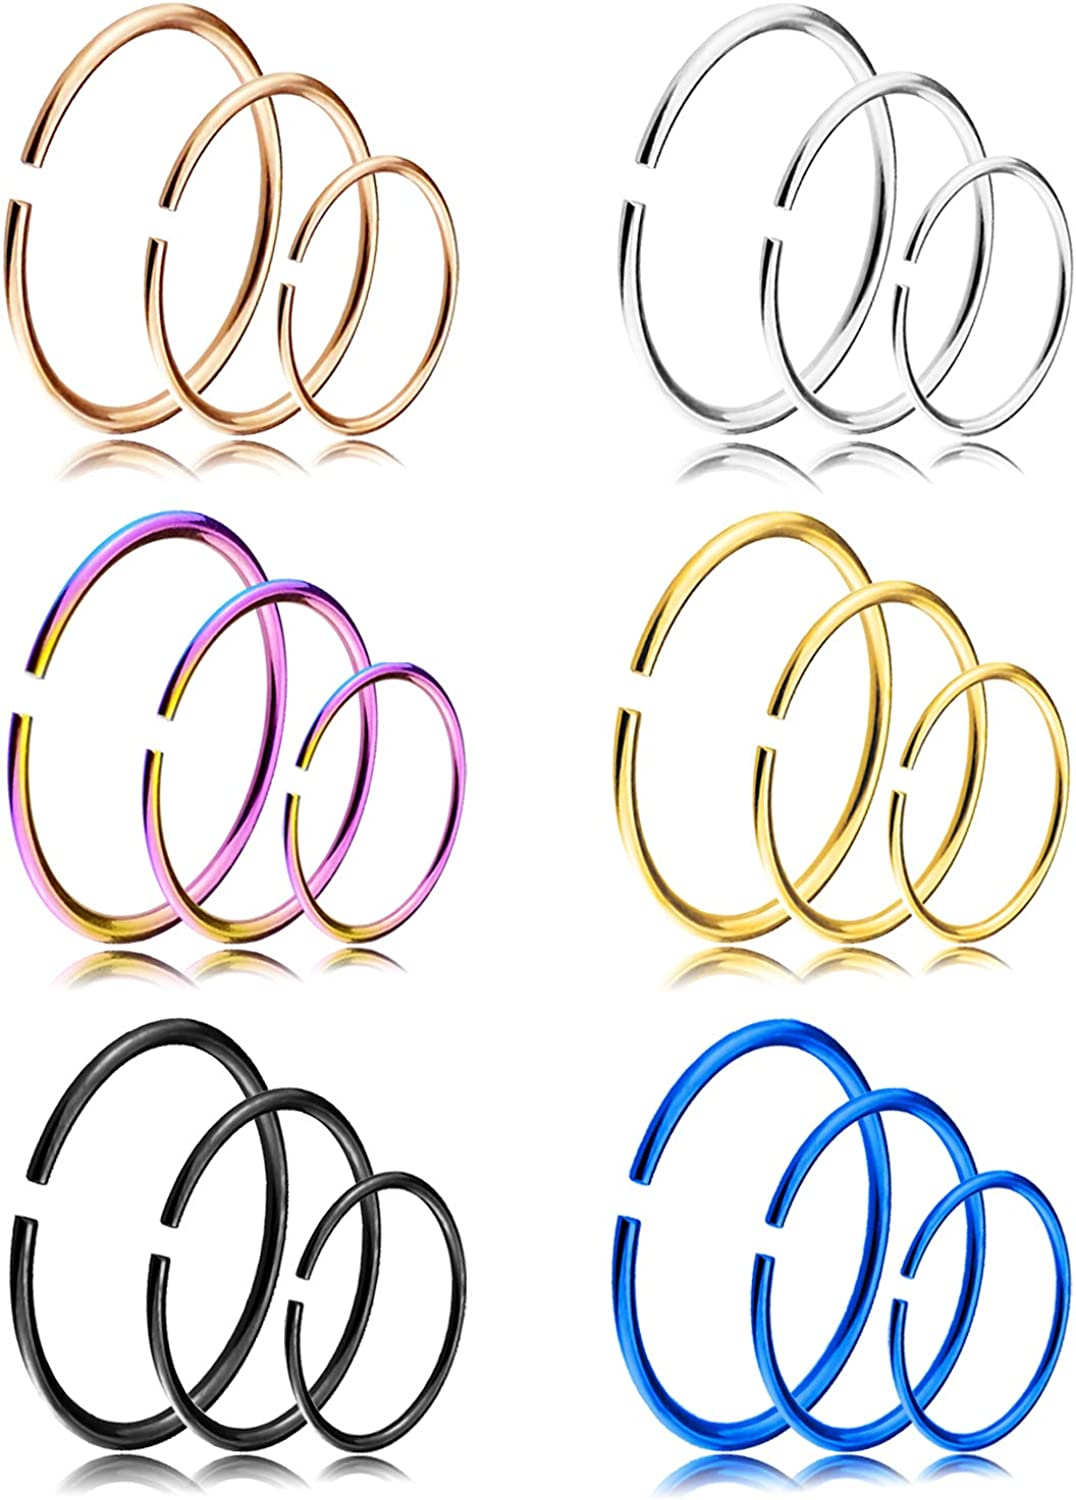 YILIN Nose Hoop Sales of SALE items from new works Rings 18-20G 316L Steel Bo Boston Mall Stainless